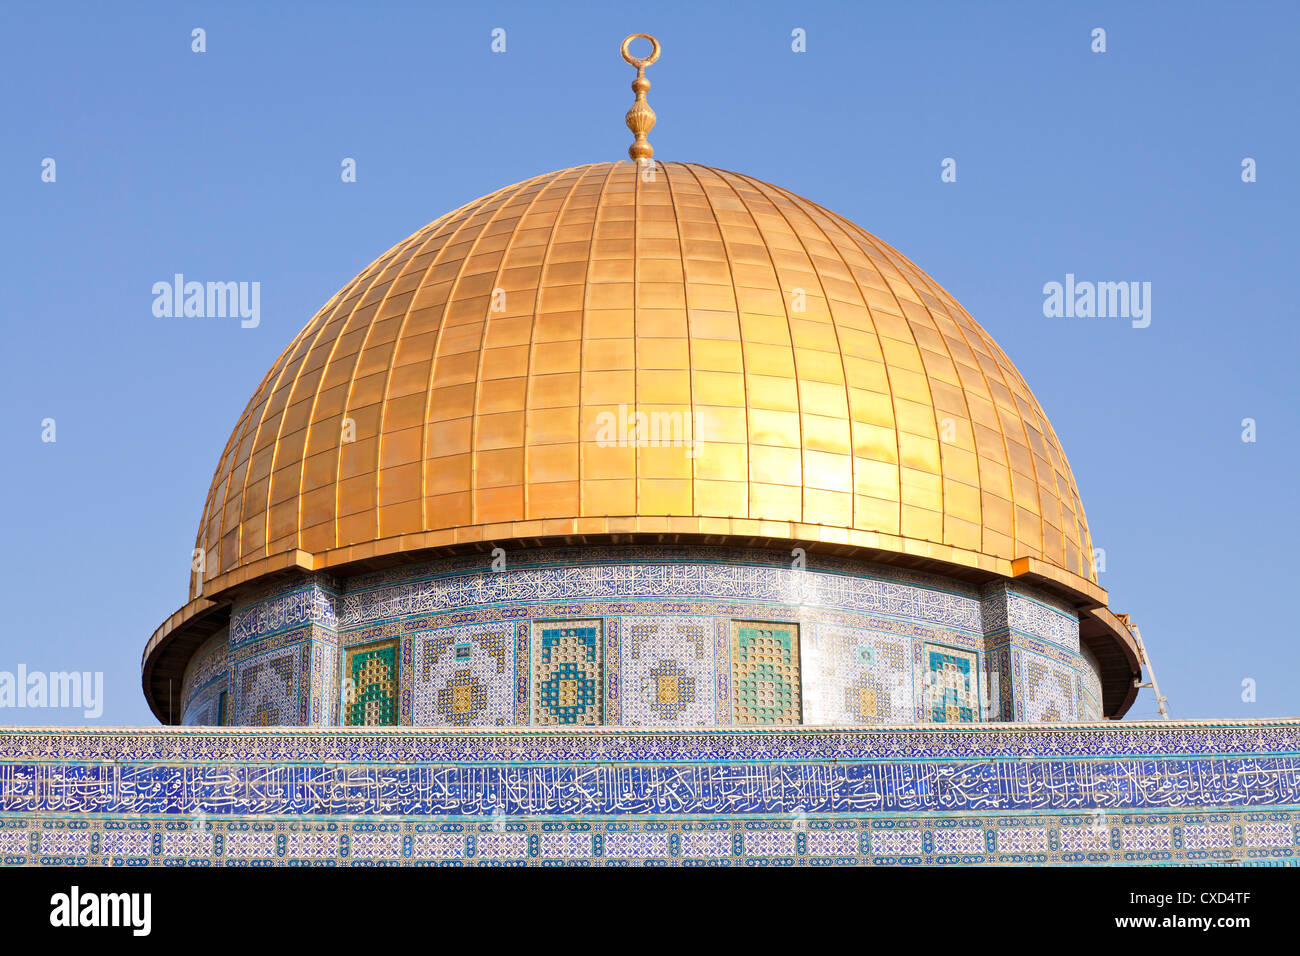 Dome of the Rock, Temple Mount, Old City, UNESCO World Heritage Site, Jerusalem, Israel, Middle East - Stock Image